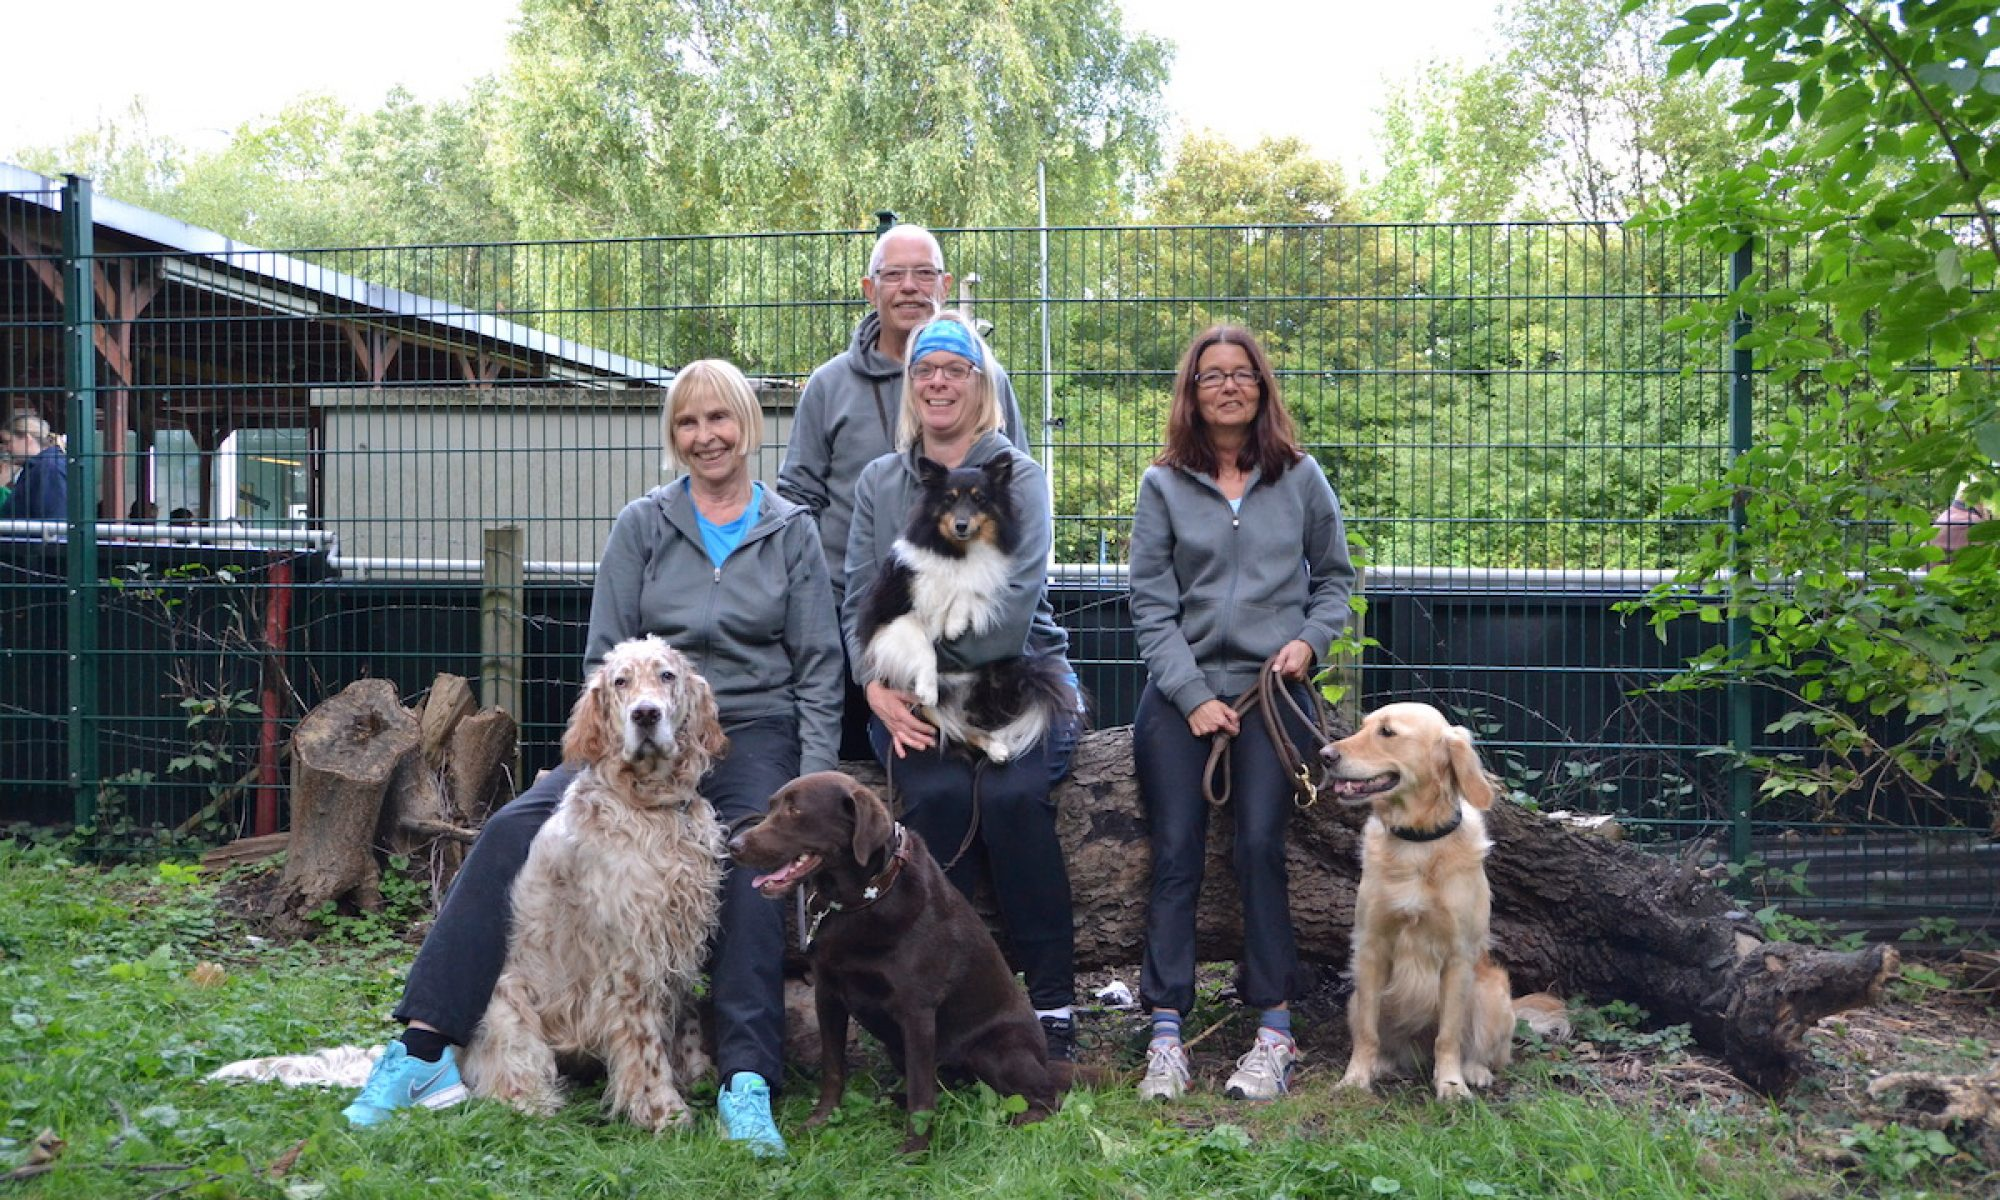 Hundesportverein Angerland